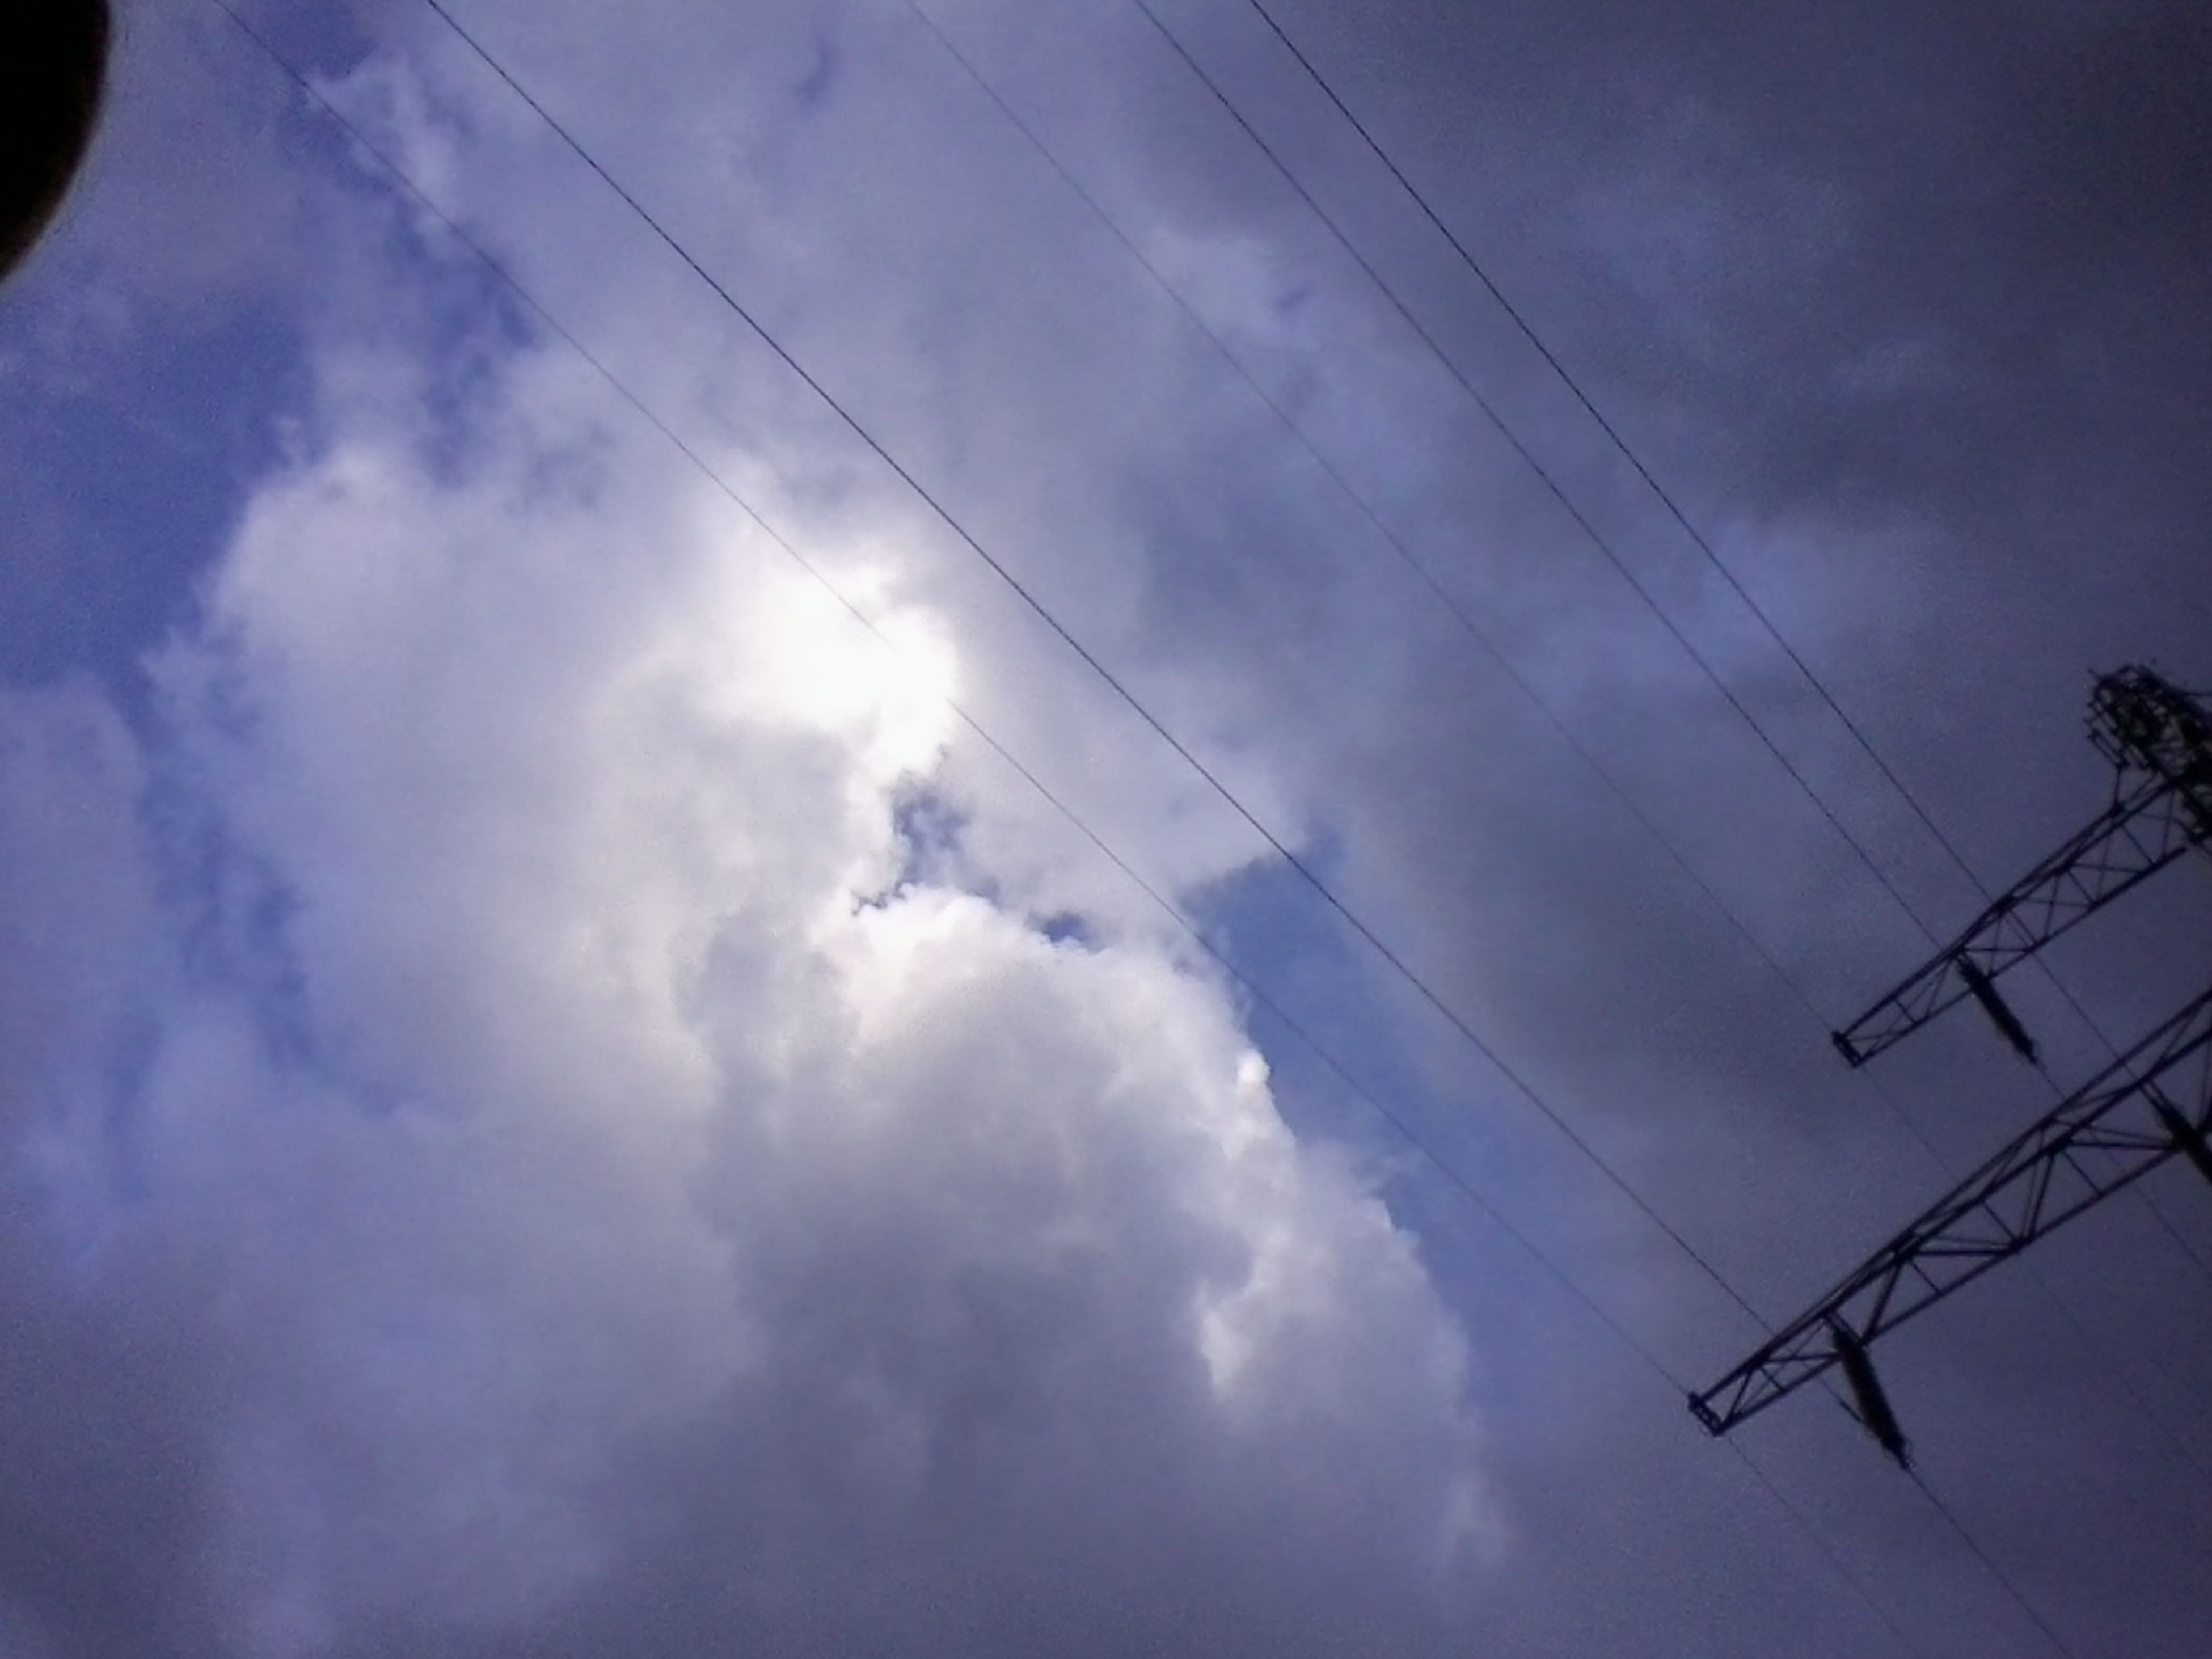 power line, low angle view, electricity, power supply, electricity pylon, cable, sky, connection, cloud - sky, fuel and power generation, technology, power cable, cloudy, cloud, silhouette, blue, nature, outdoors, no people, beauty in nature